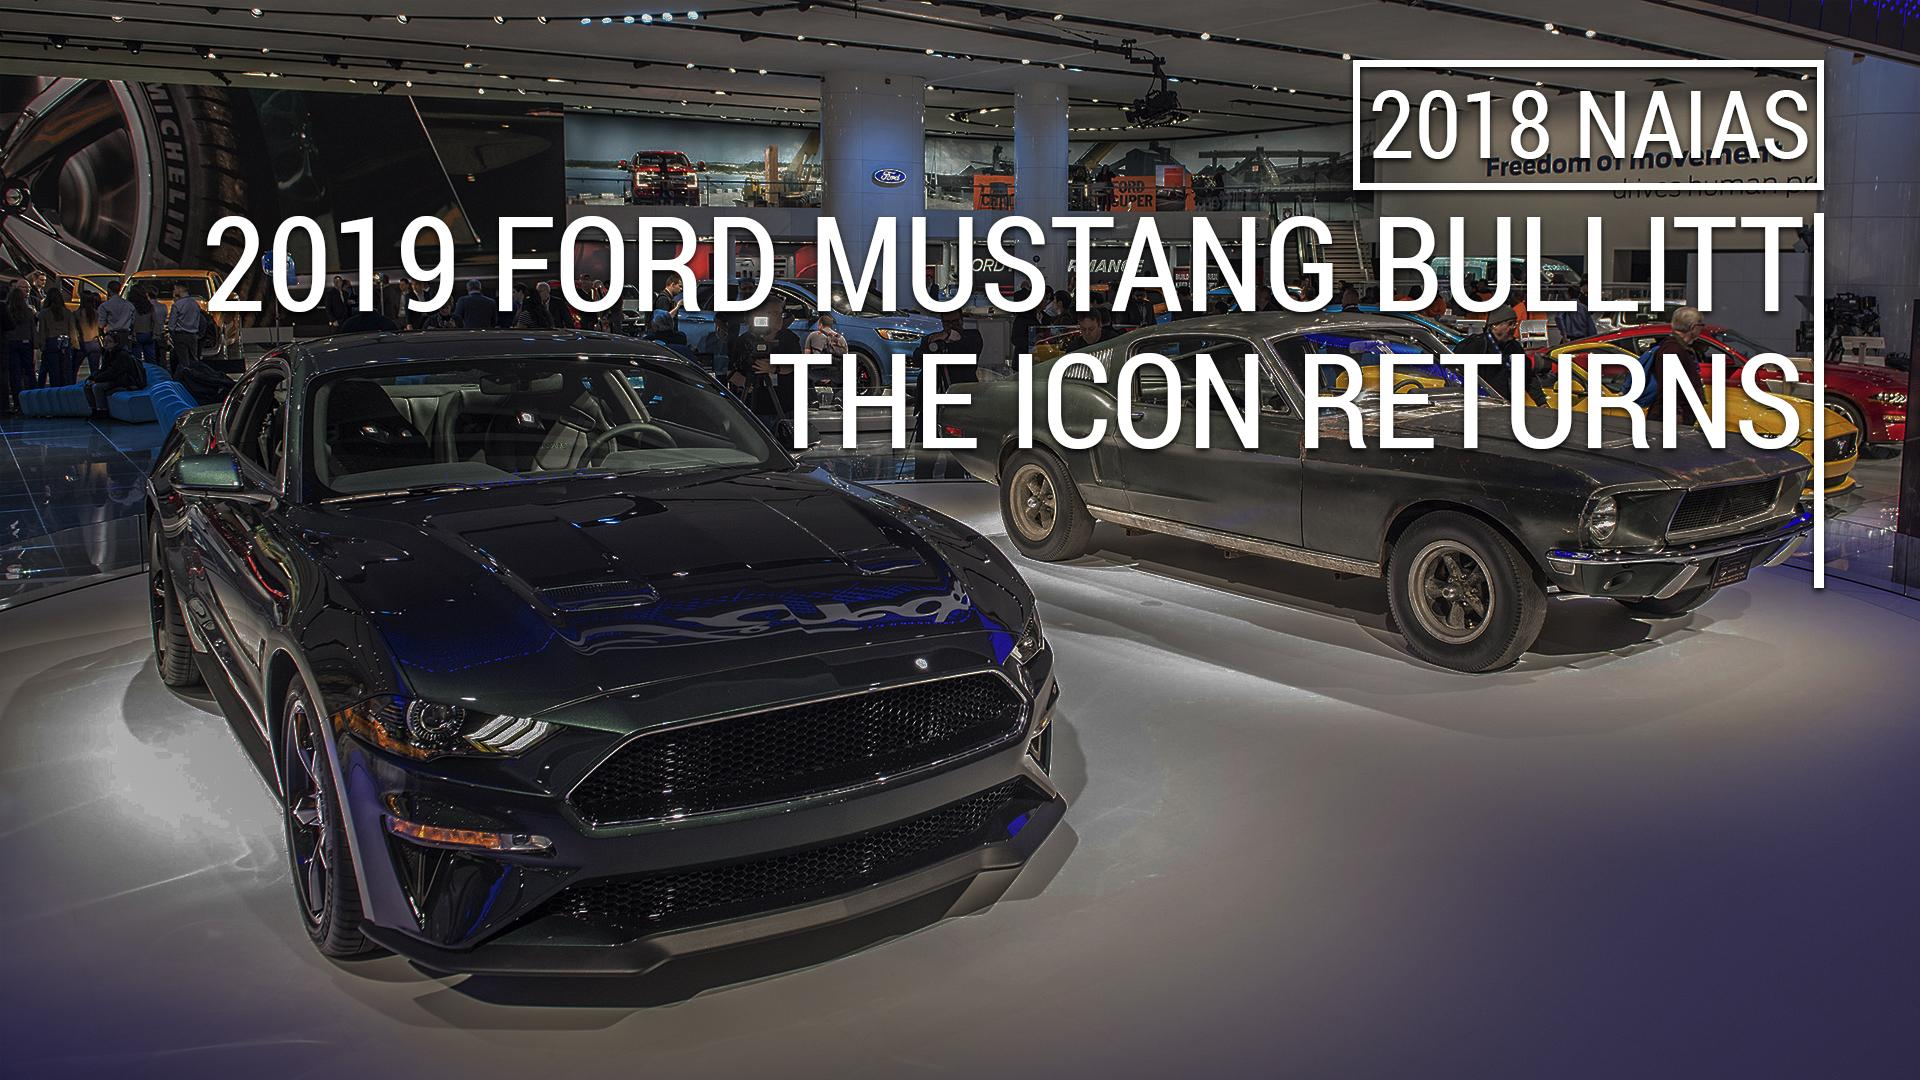 Ford Bullitt Mustang Vs Gt Comparison Of Power Performance The Crew Specs Autoblog